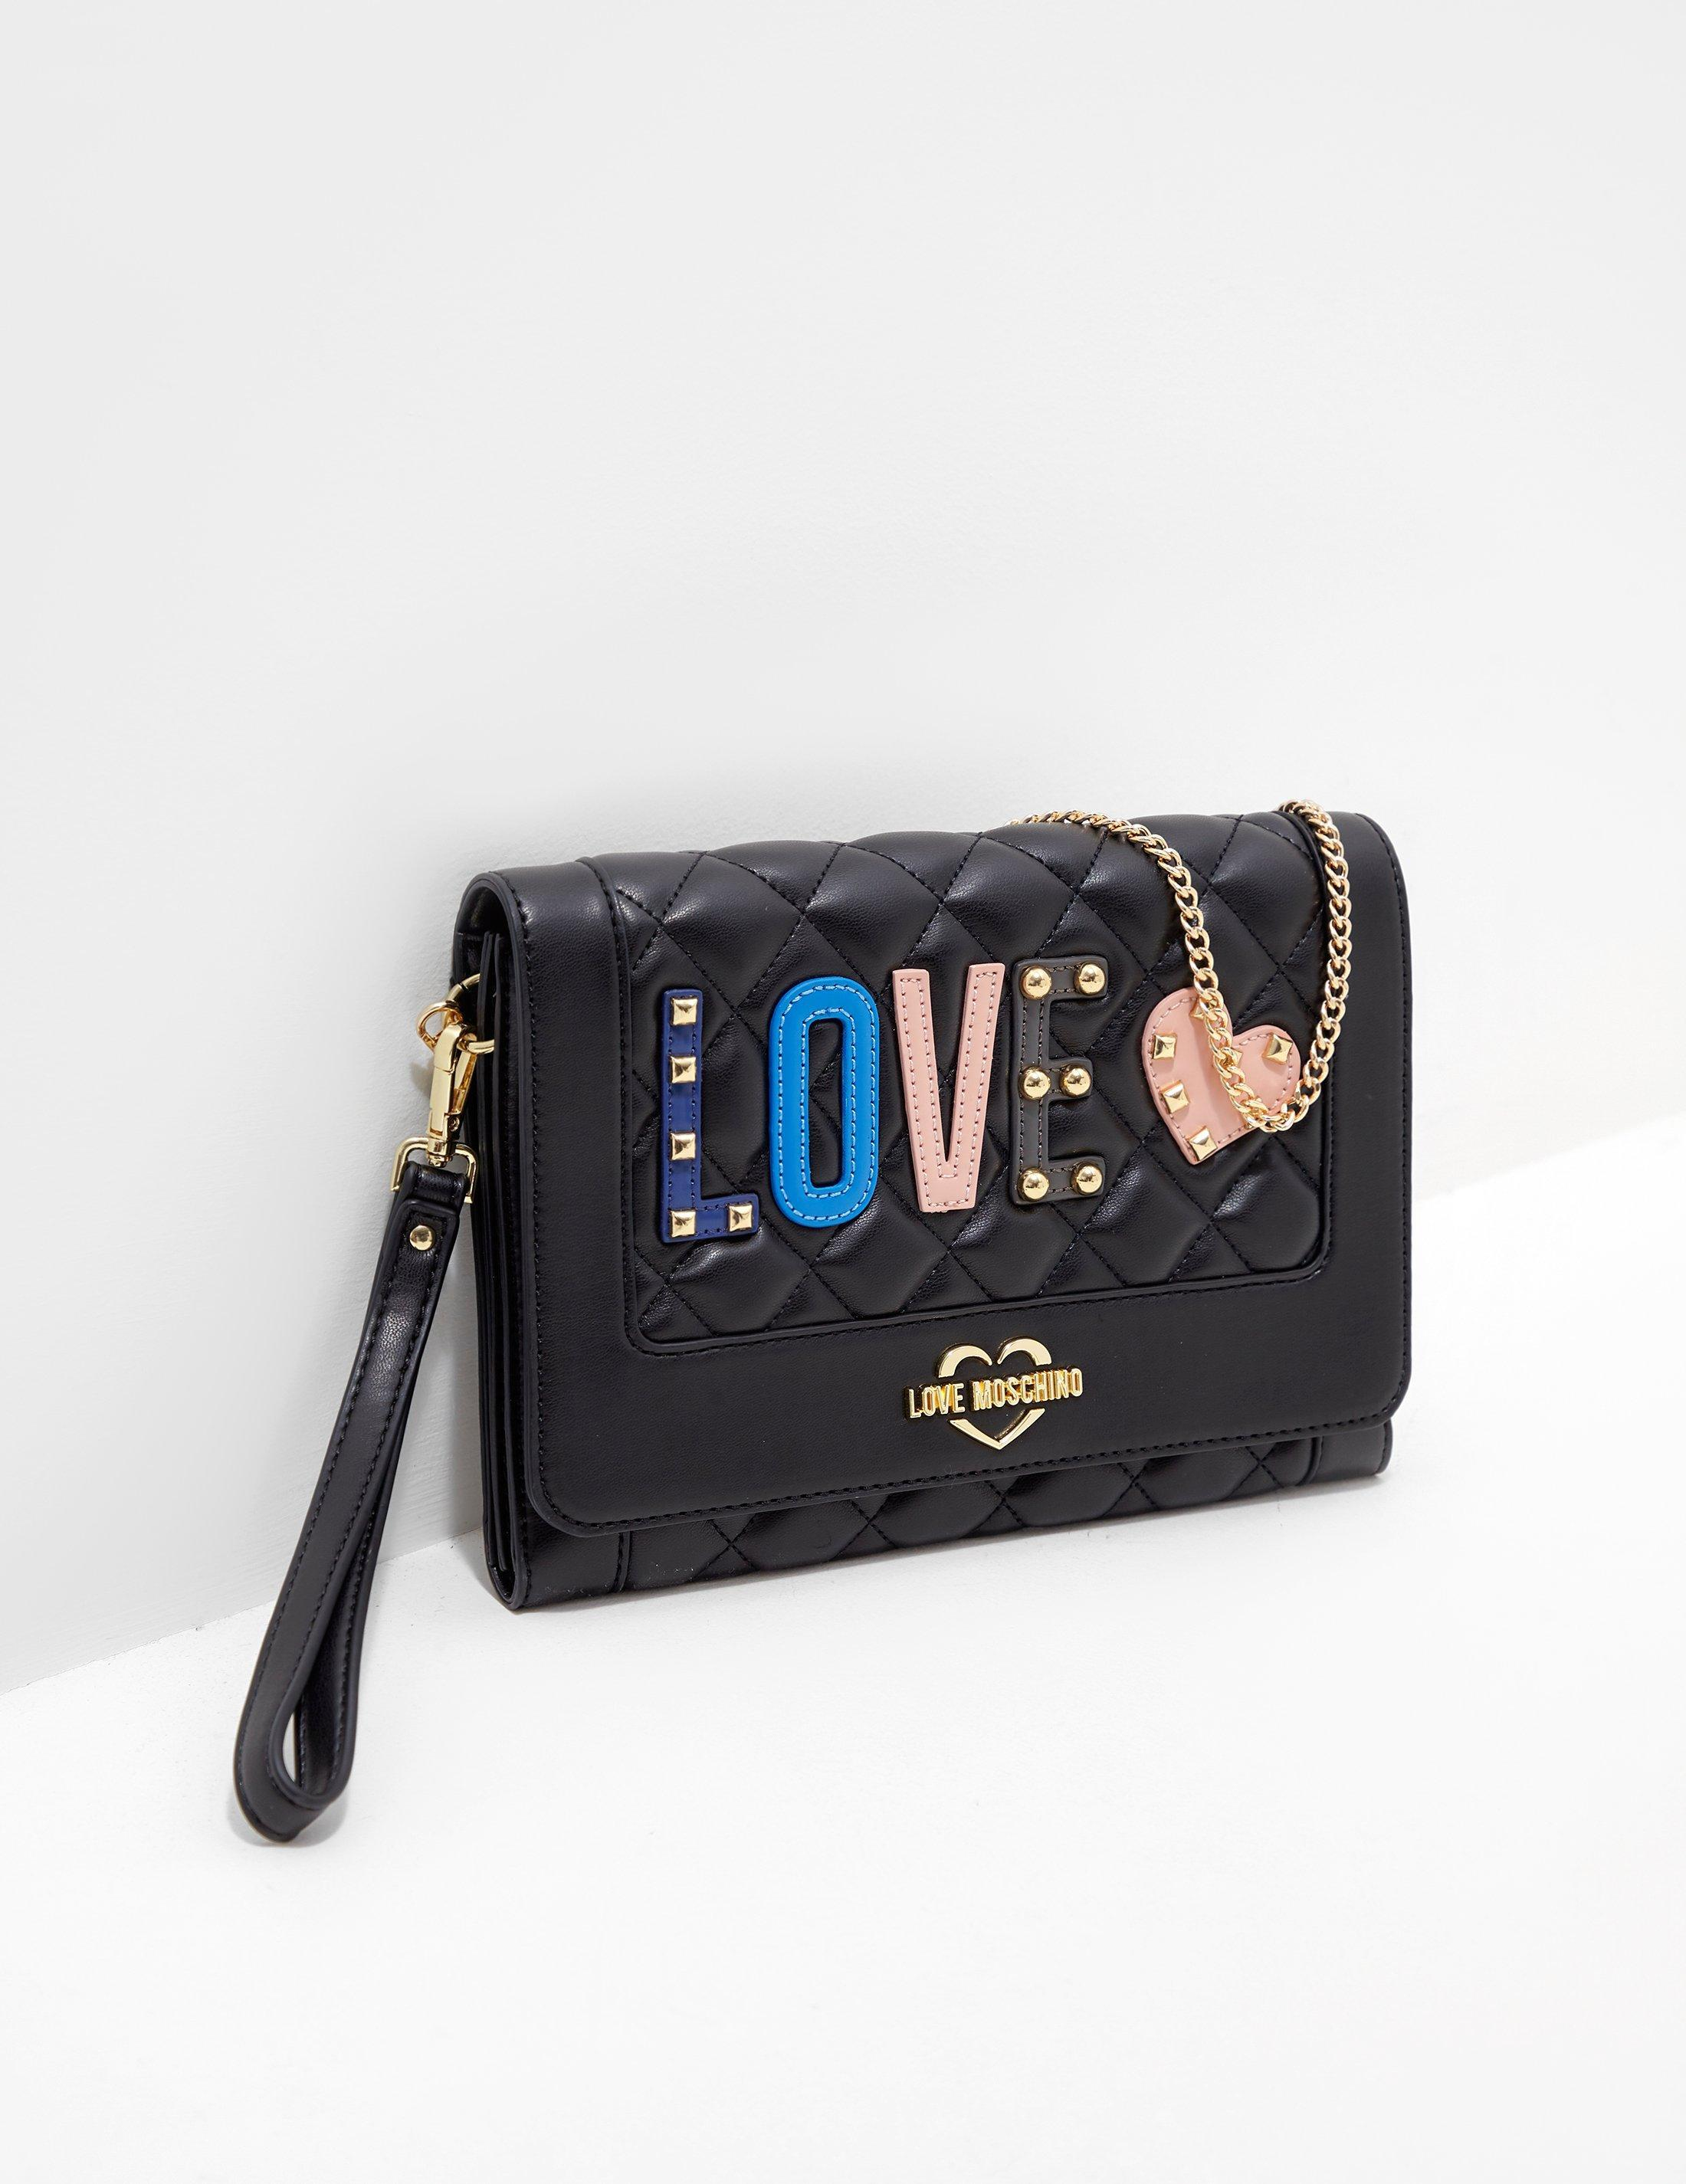 c7d46ccc2e44 Love Moschino - Womens Quilted Shoulder Bag Black - Lyst. View fullscreen